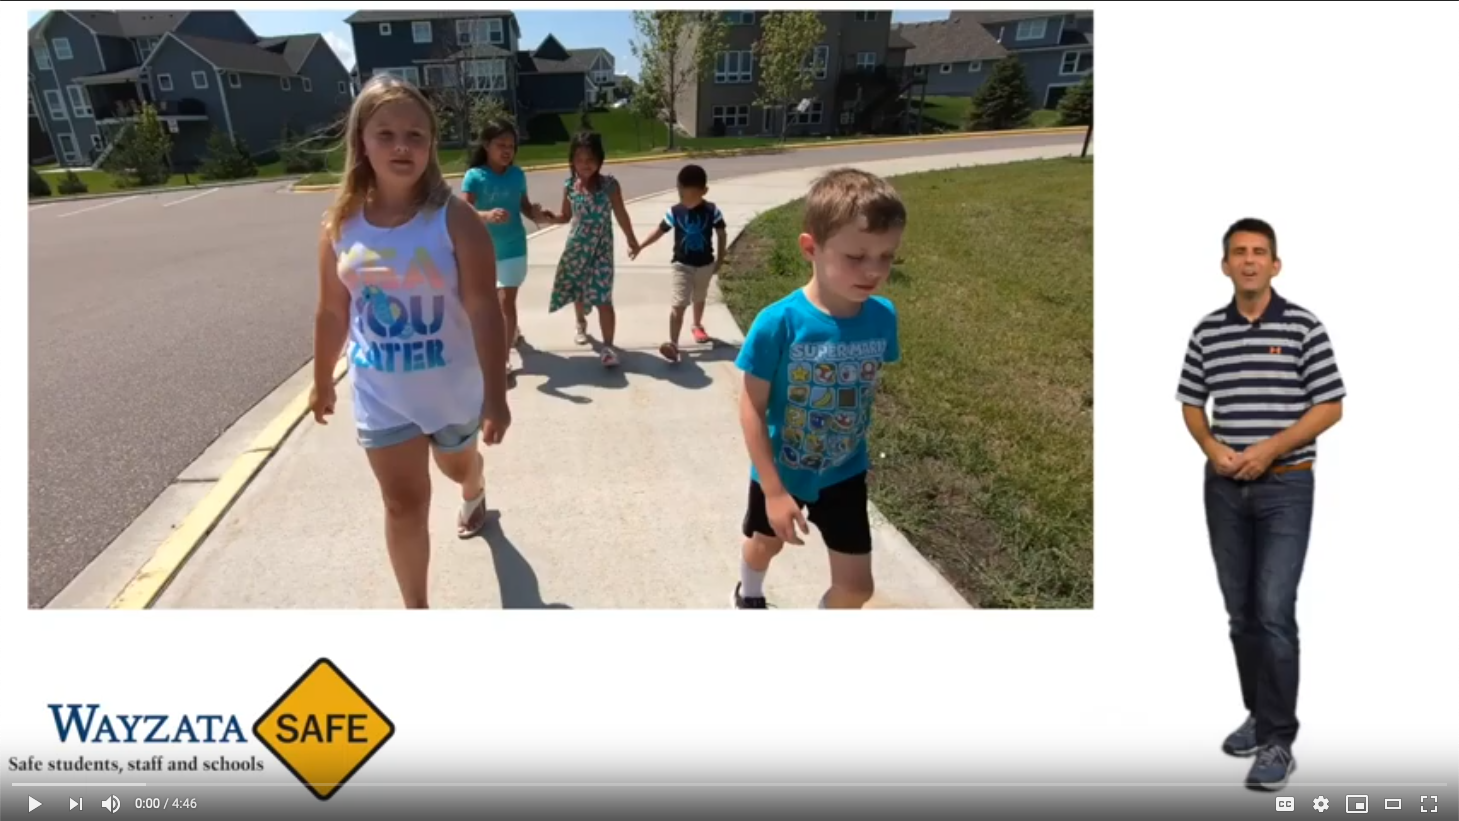 Bus Safety in Wayzata Public Schools video on YouTube